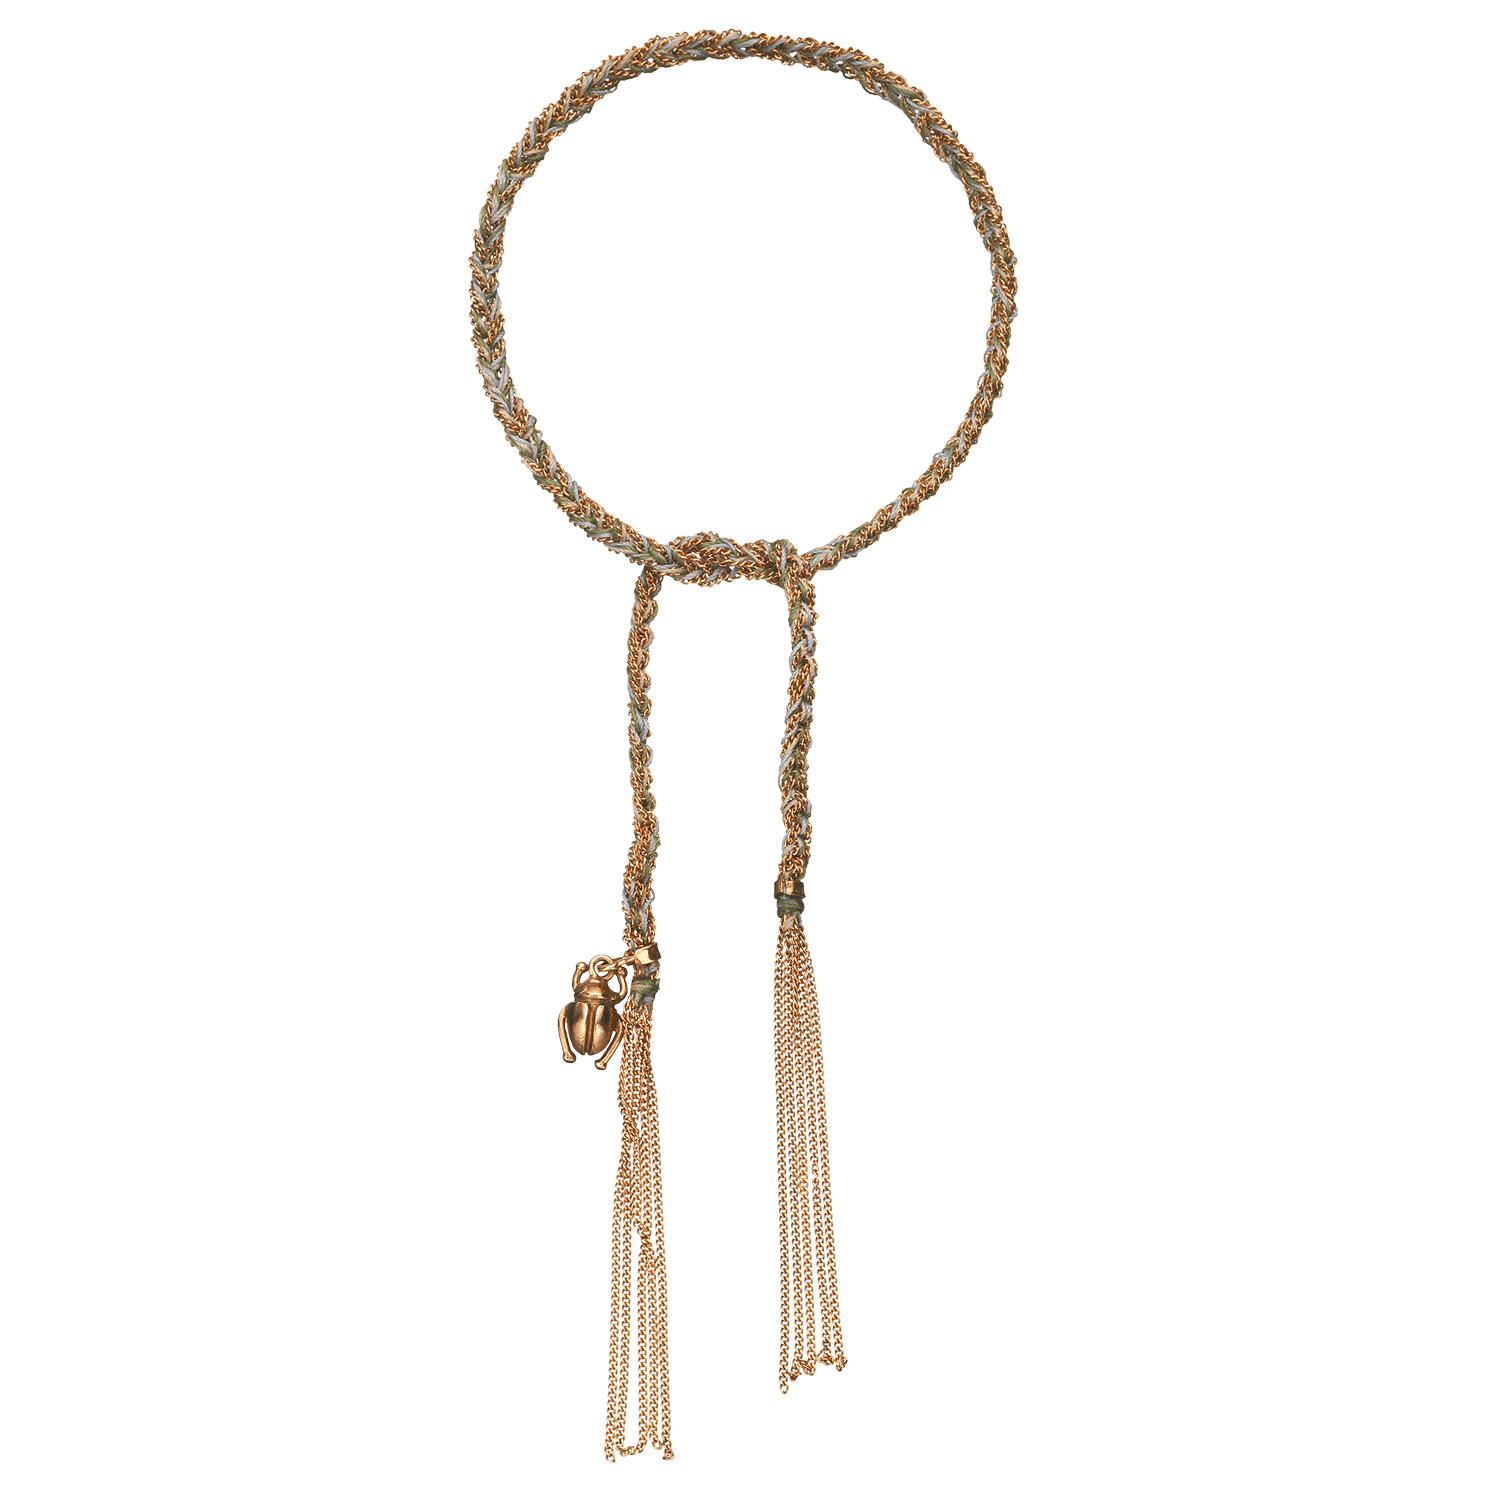 Carolina Bucci Lucky Bracelet with Strength Charm Pink Gold